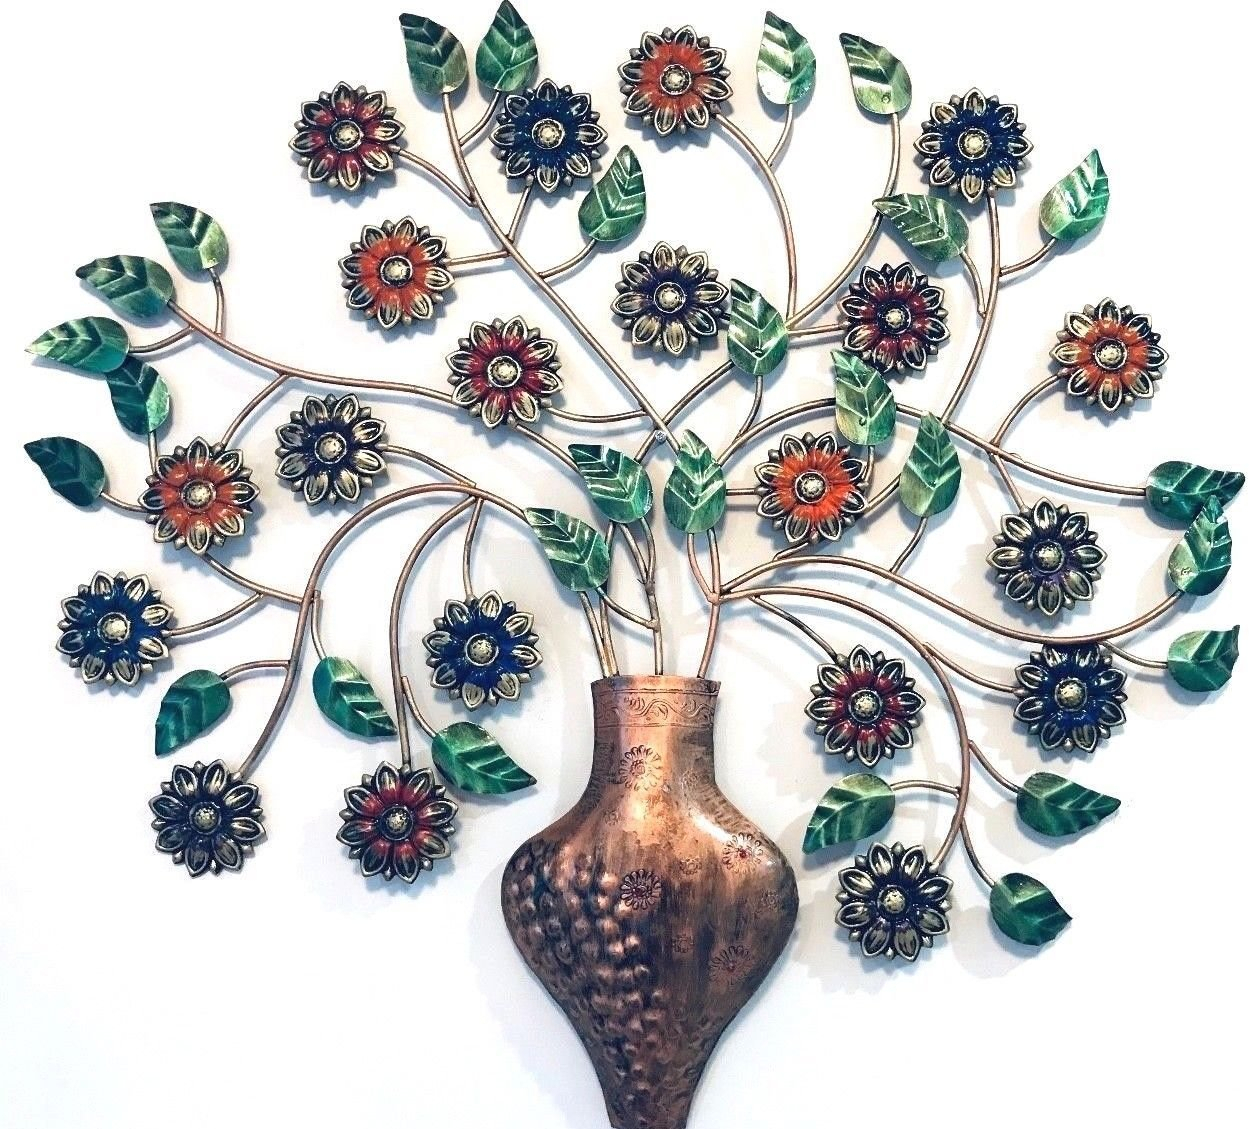 Metal Wall Decor Tree Wall Hanging Sculpture Big 76 Cm With Regard To Tree Wall Decor (View 19 of 30)